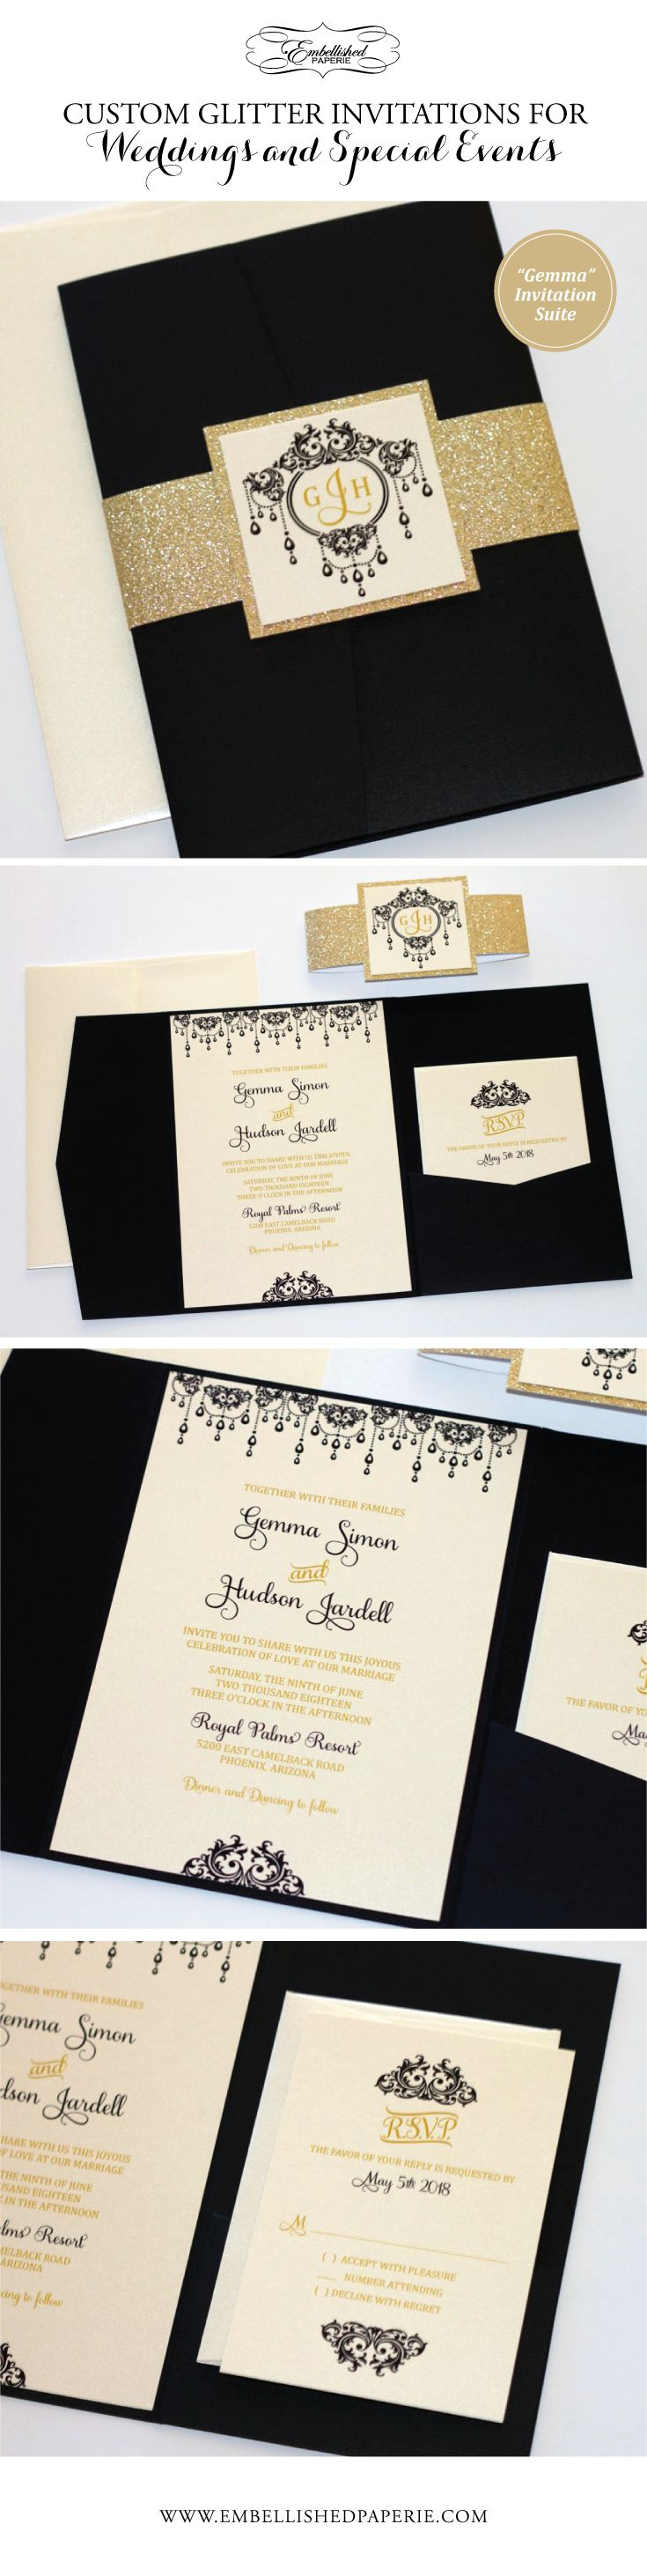 wedding reception directions card%0A Elegant Glitter Wedding Invitation  Ivory  Black and Gold Glitter Wedding  Invitation  Glitter Belly